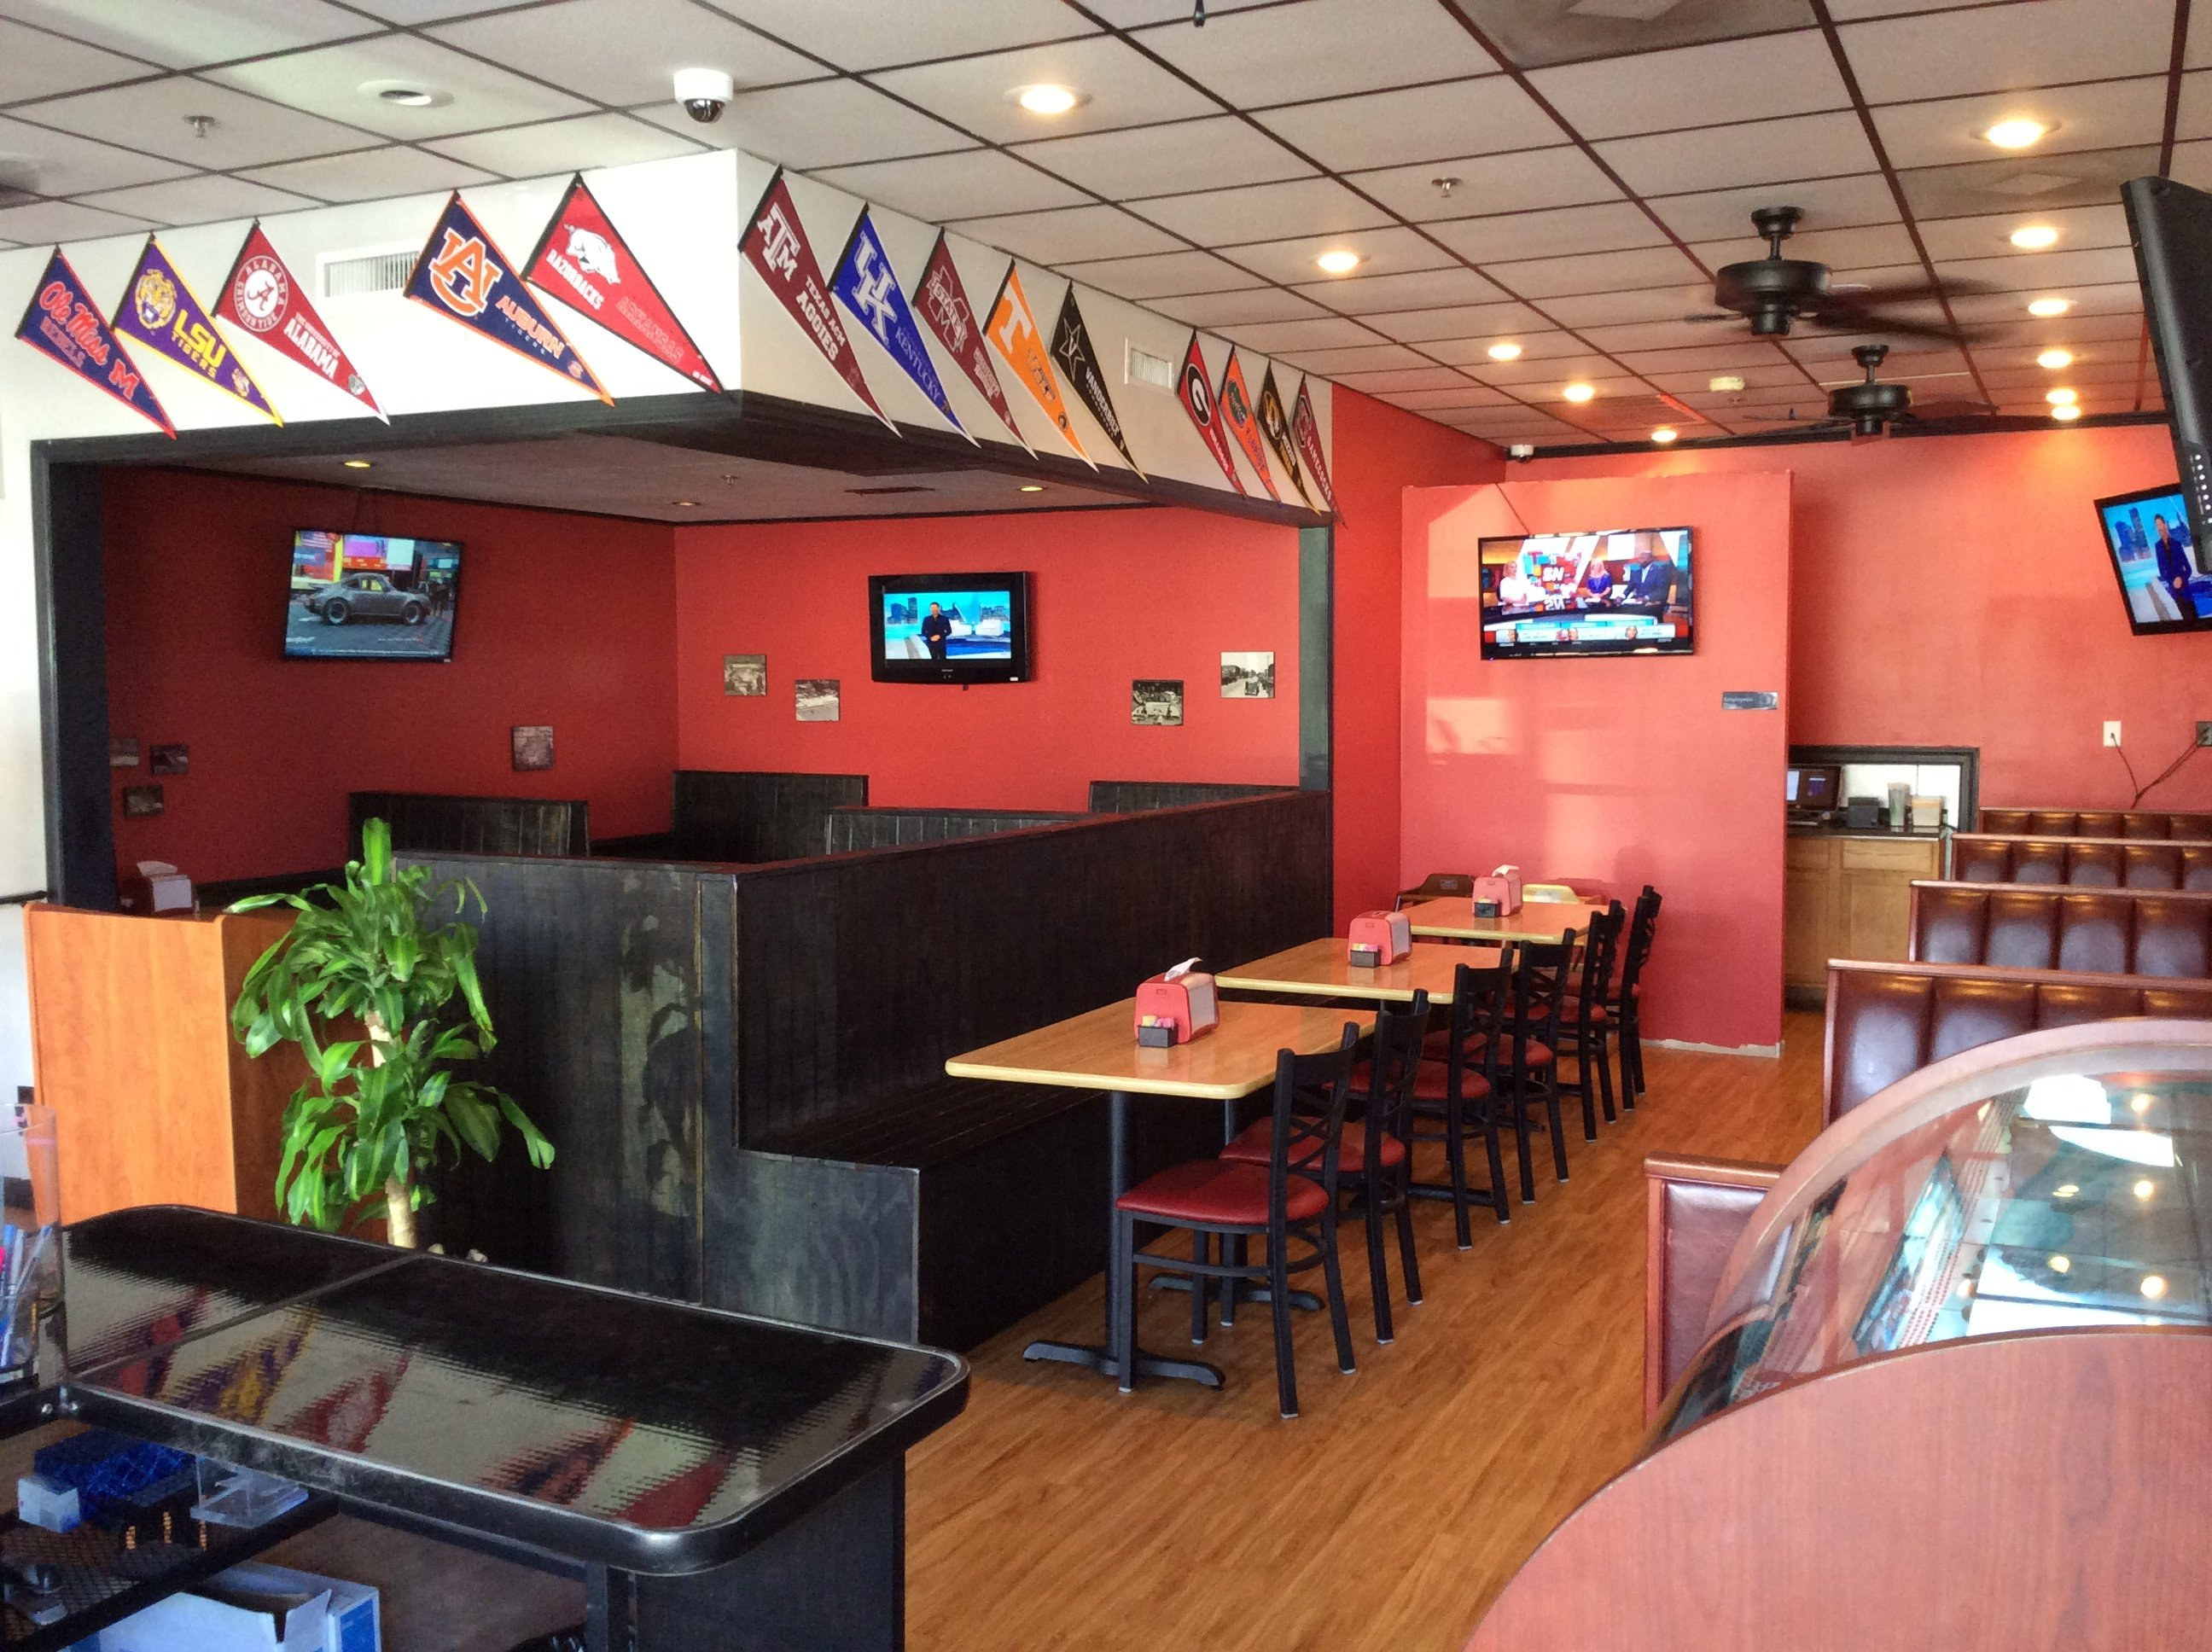 Inside of Neighborhood Grill & Catering